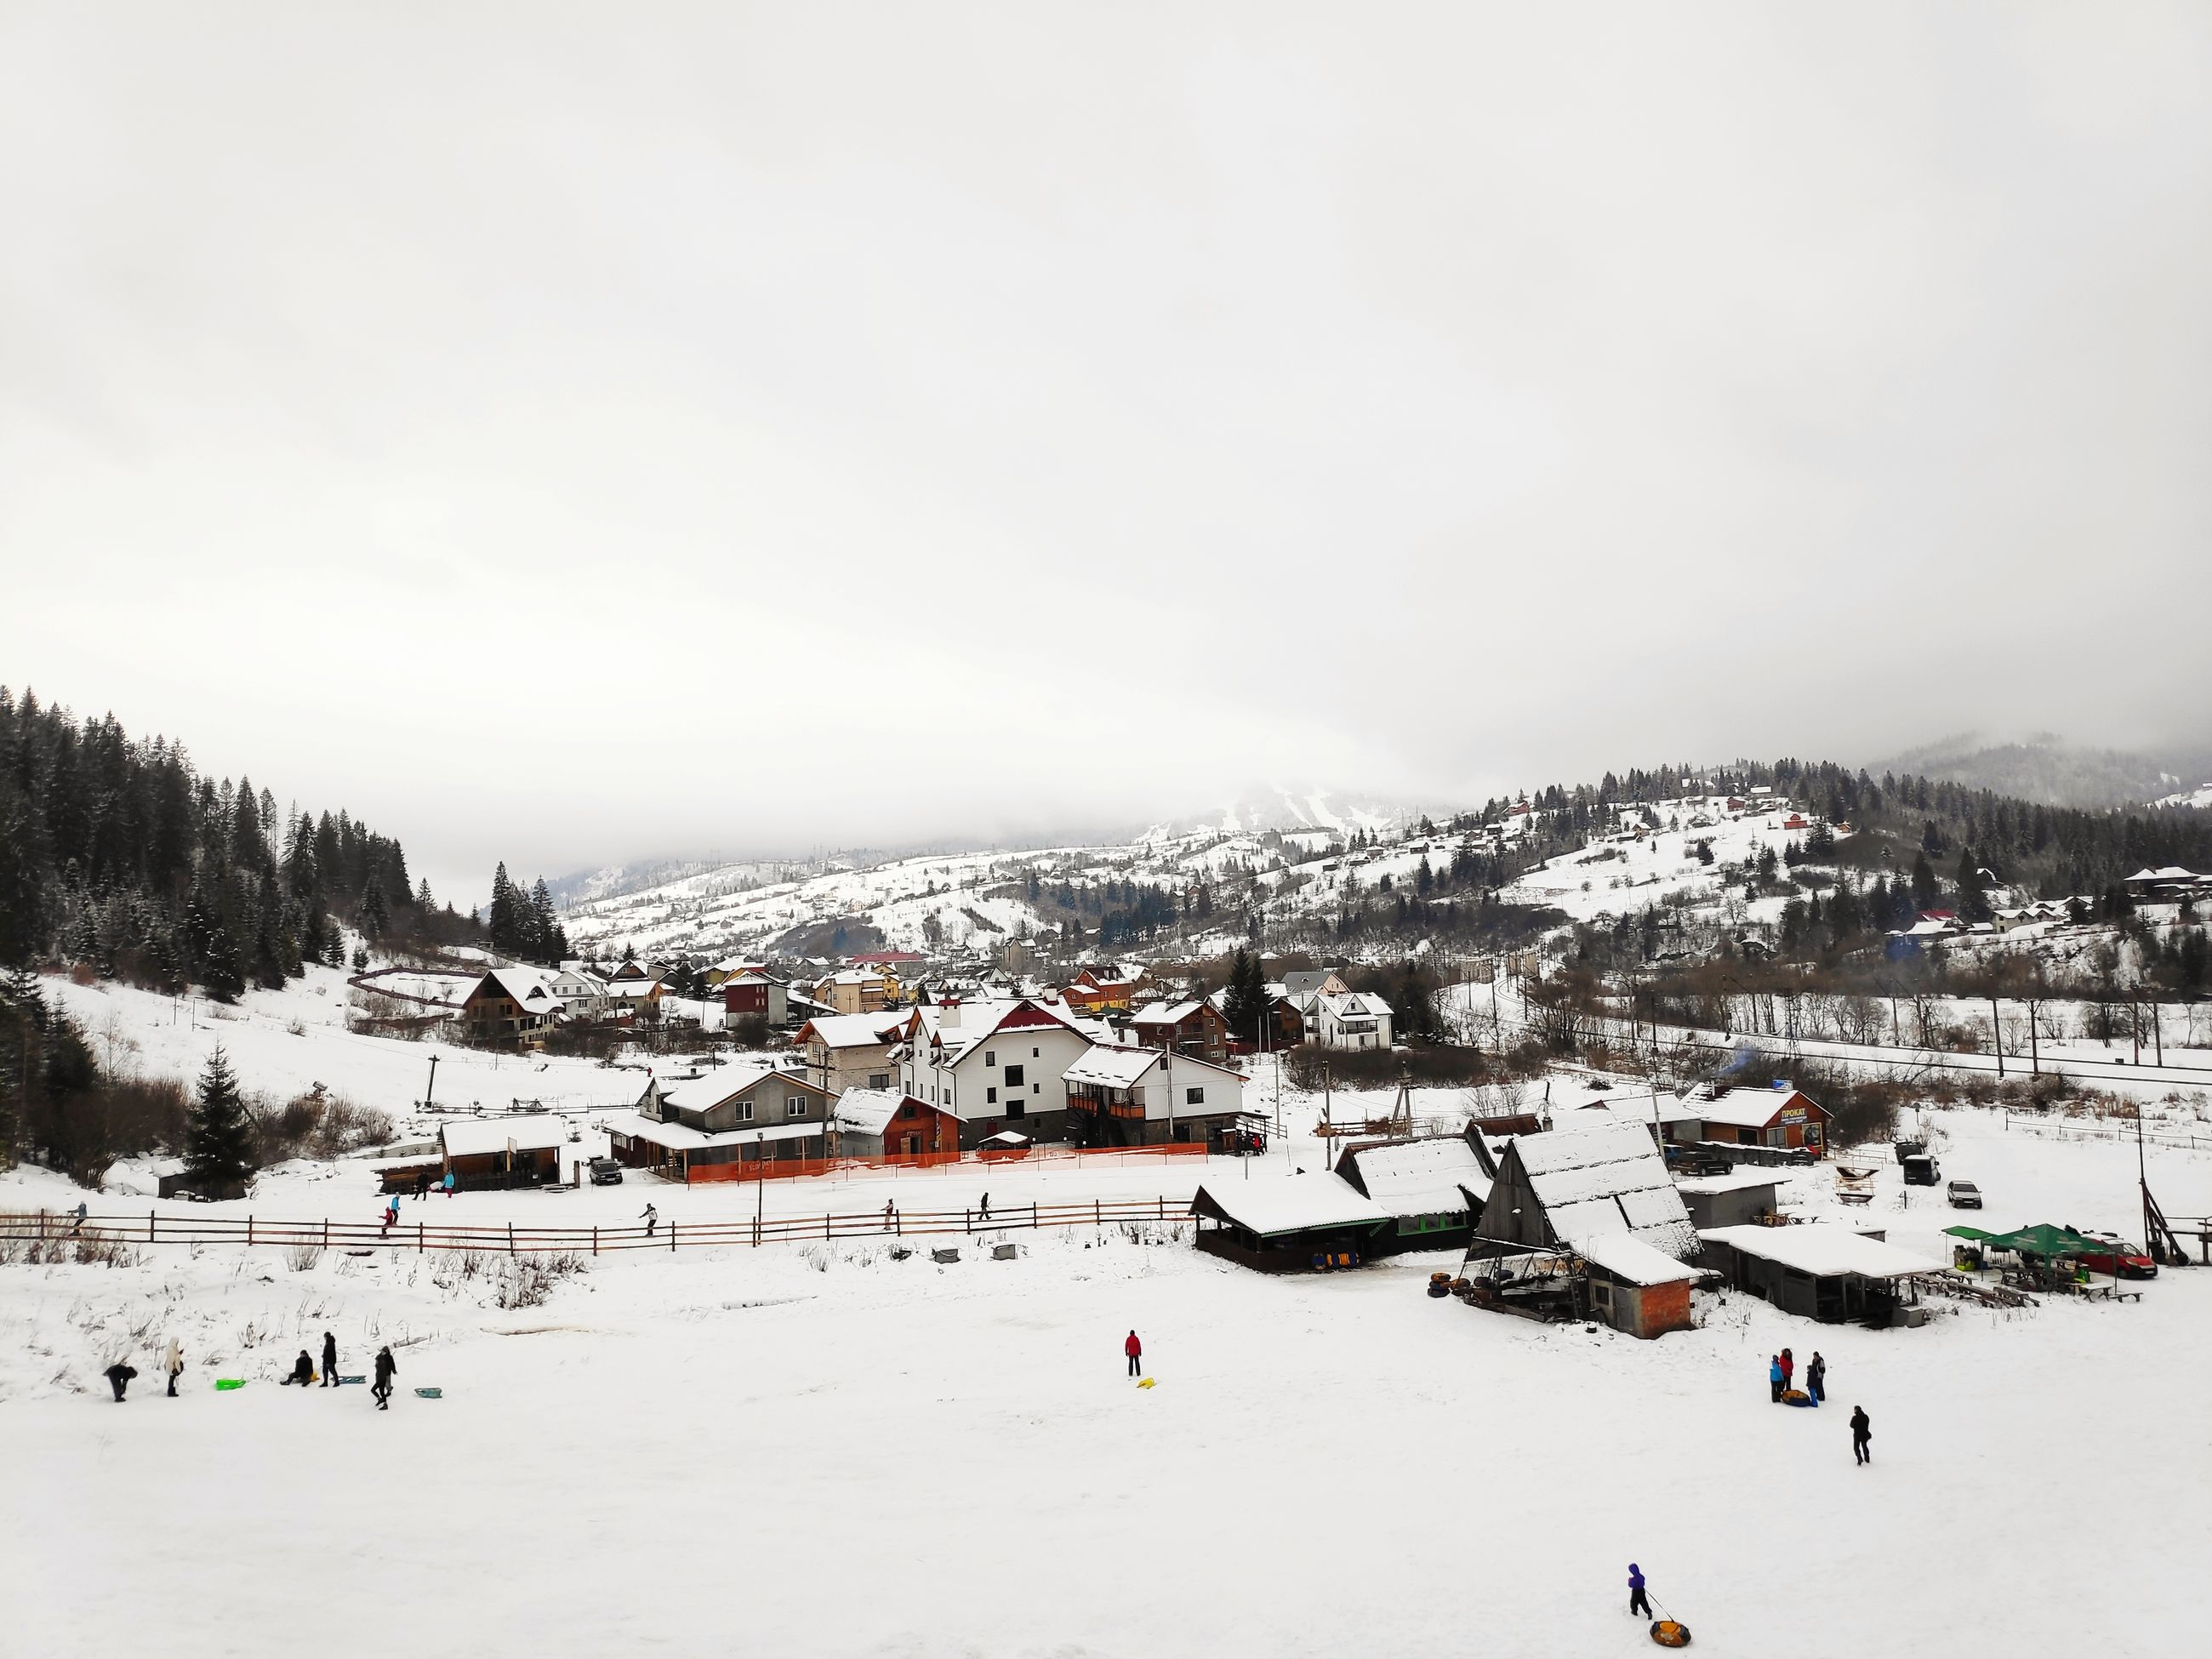 winter, snow, cold temperature, architecture, built structure, building exterior, mountain, sky, building, environment, nature, high angle view, incidental people, day, scenics - nature, house, land, covering, beauty in nature, outdoors, snowcapped mountain